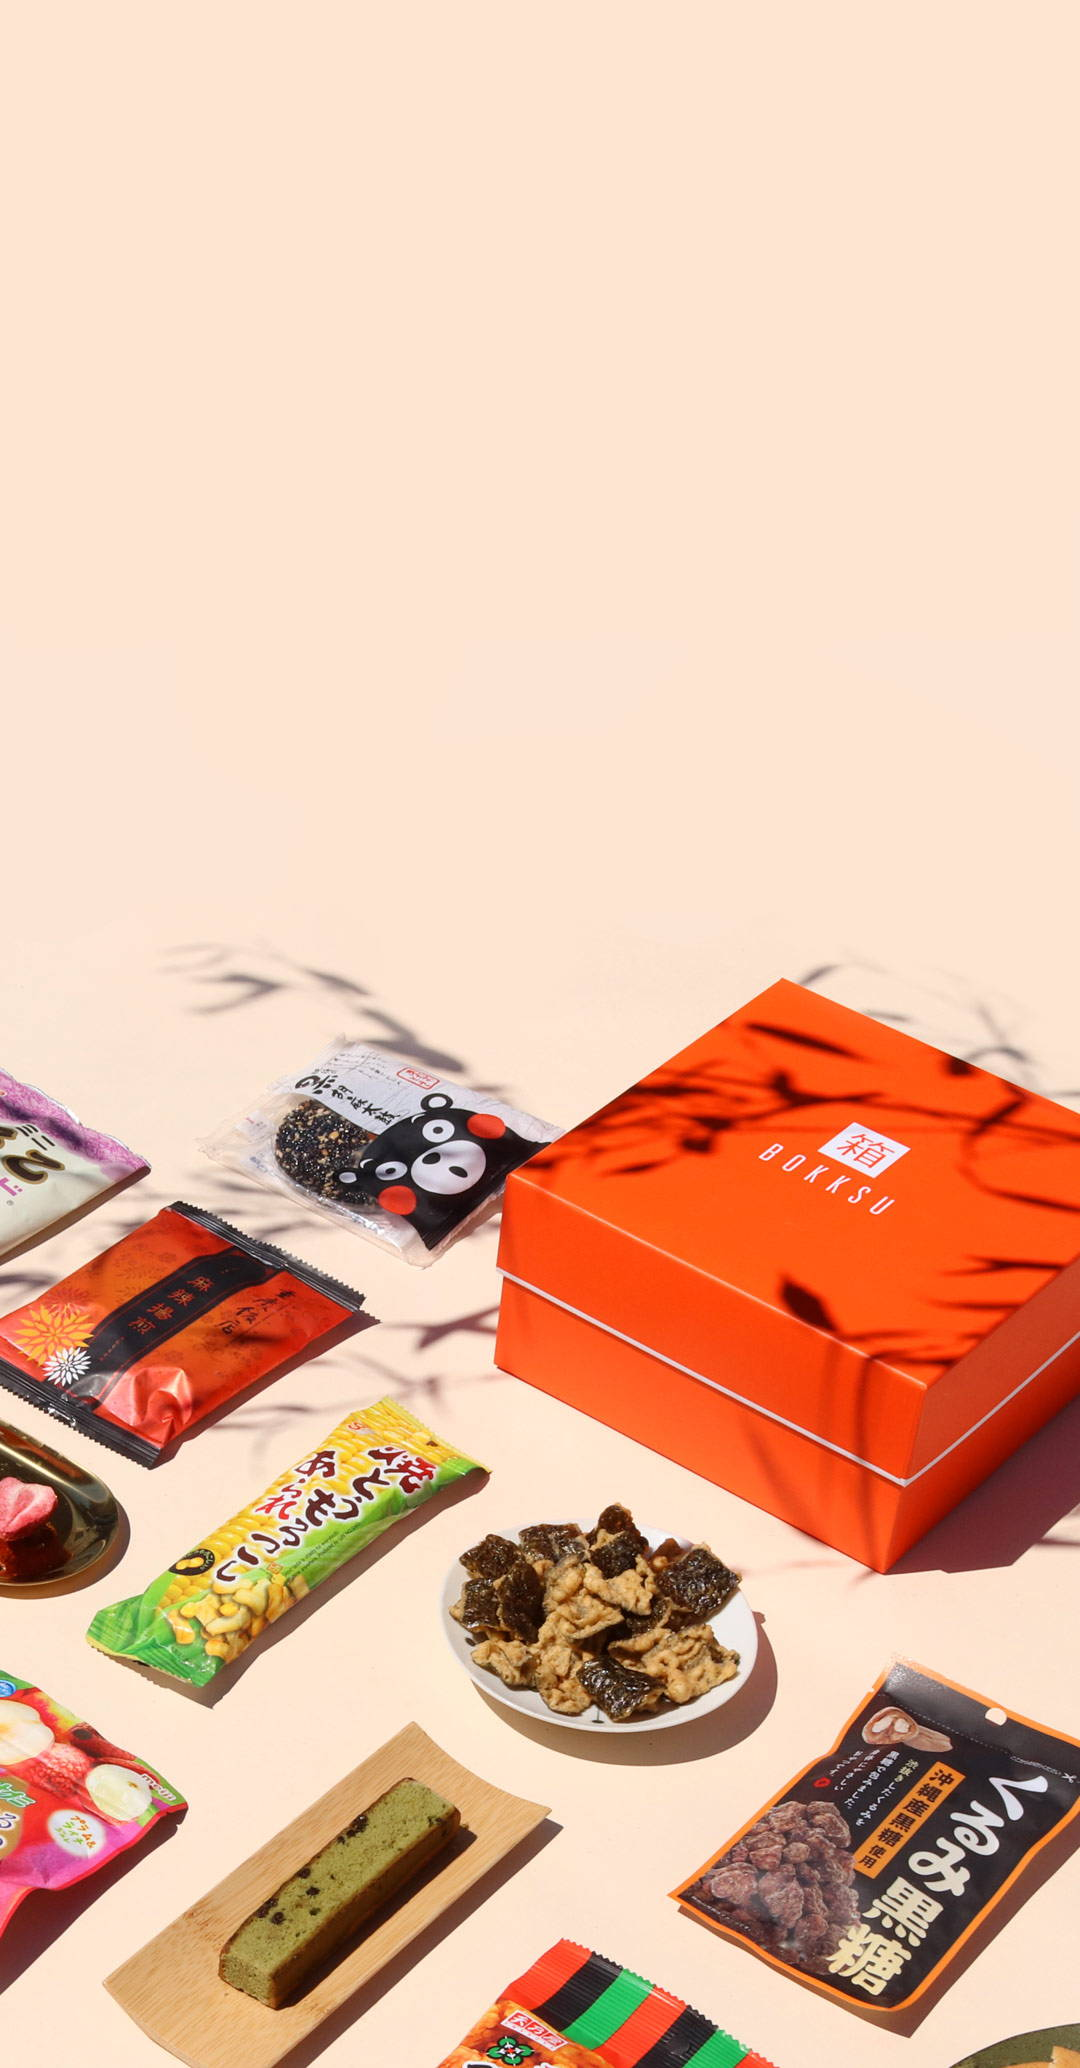 Bokksu Japanese snack subscription box homepage banner